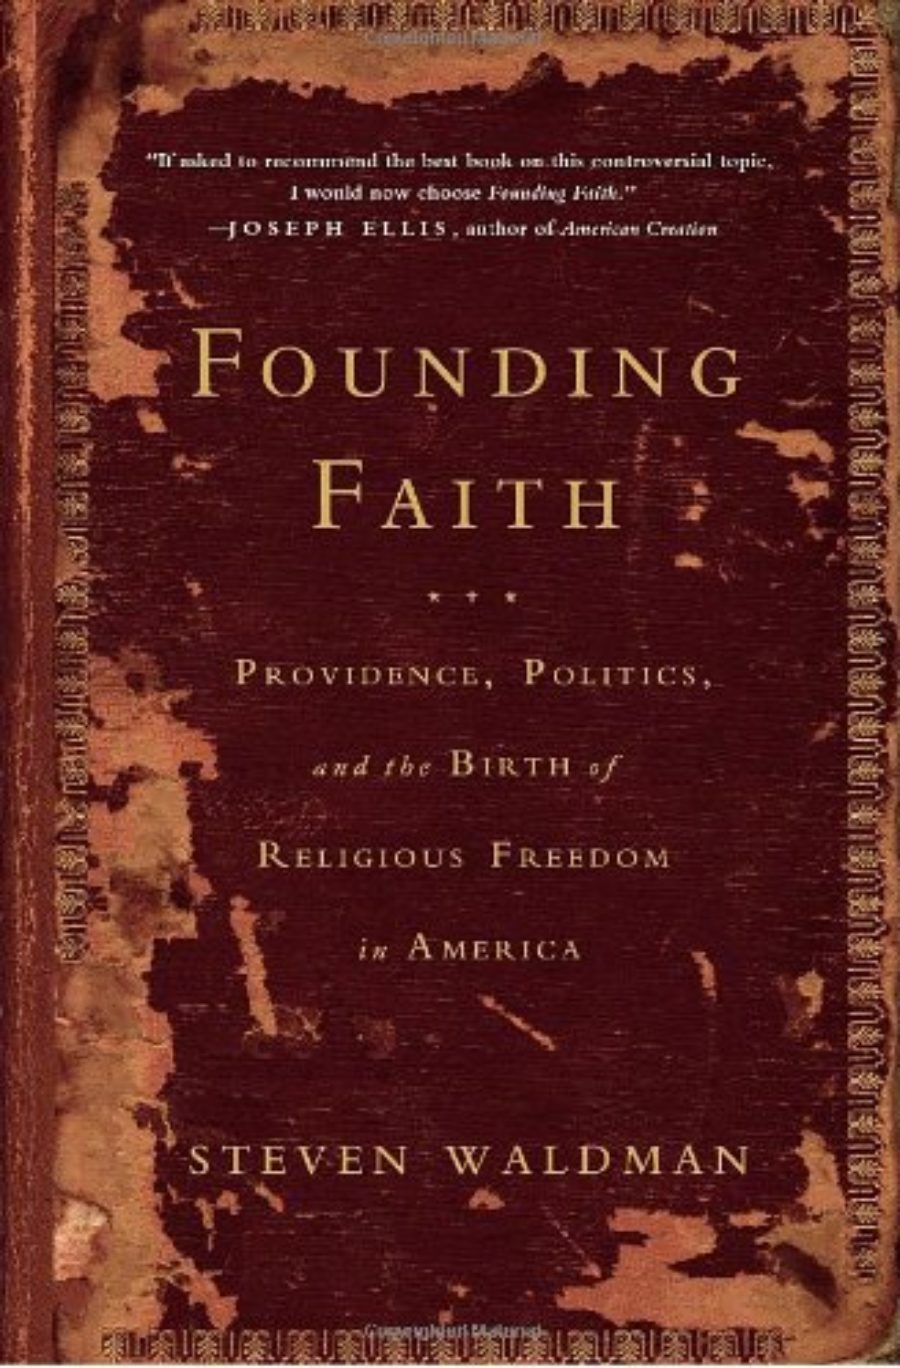 Cover of Founding Faith: Providence, Politics, and the Birth of Religious Freedom in America